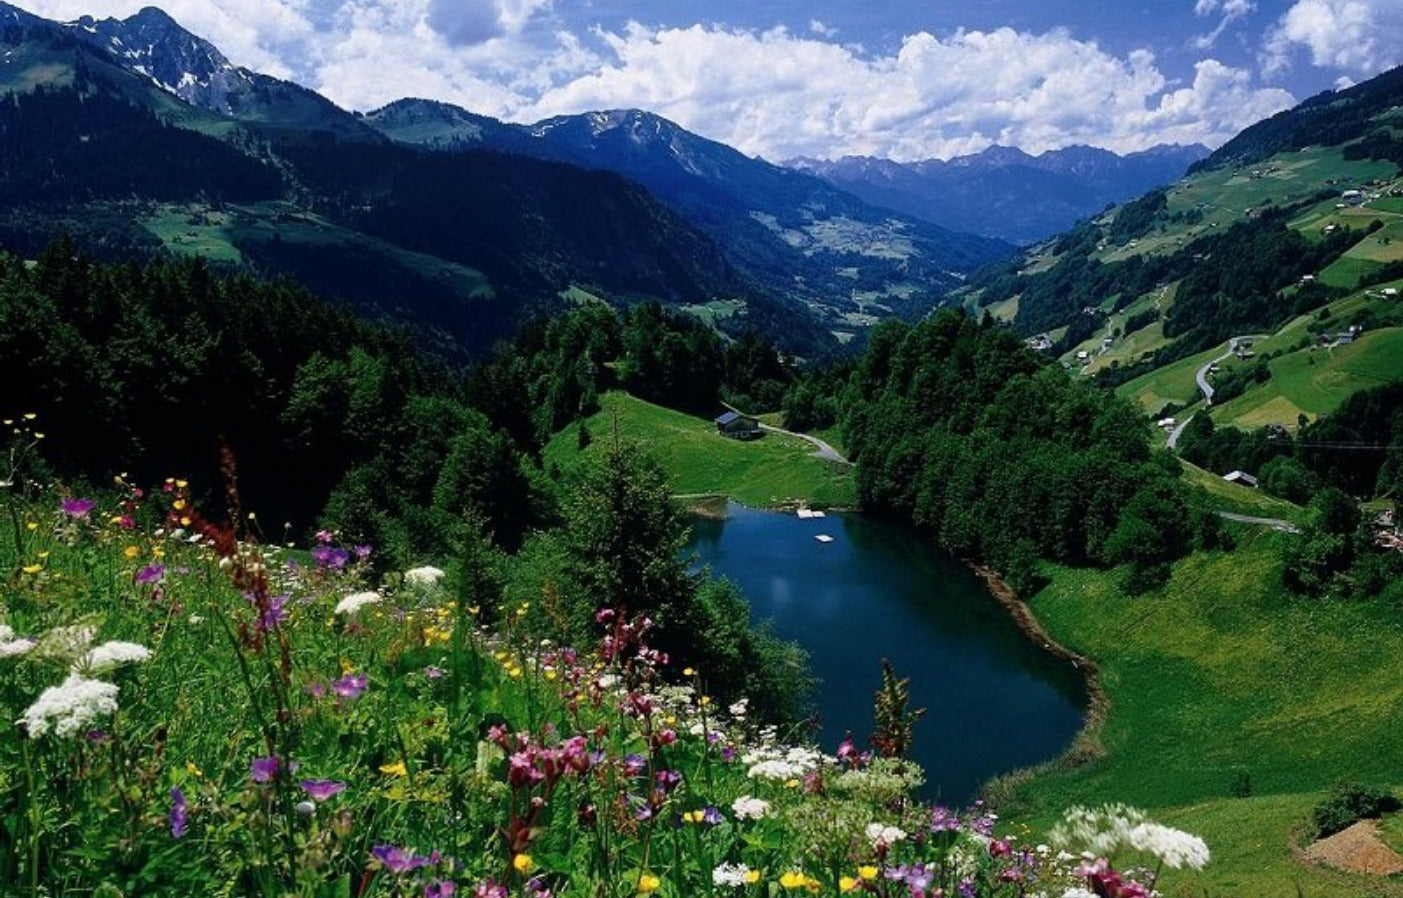 Holidays That Move You! Austrian Alps Active!